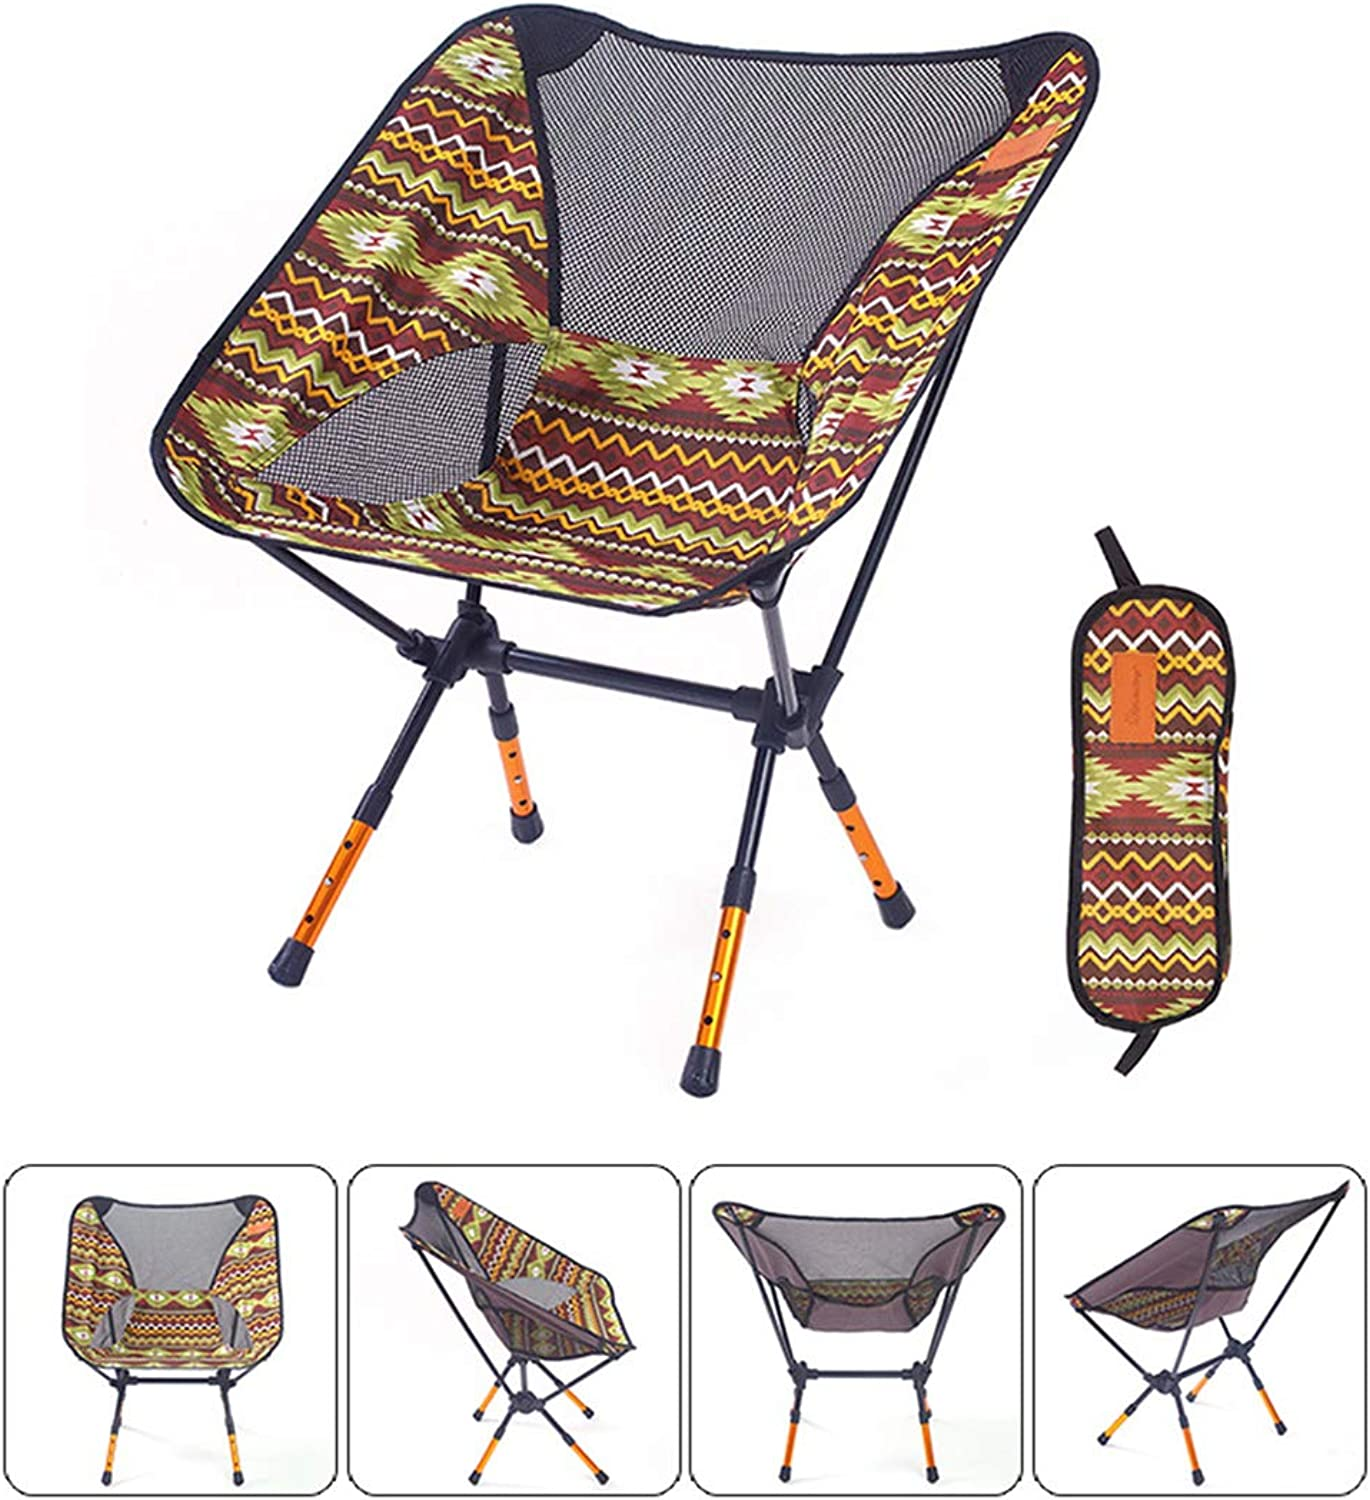 Lightweight Camping Chair Backpacking Chair for Camping Hiking Fishing Events Hunting Music Festival Small Folding Low Collapsible Chair